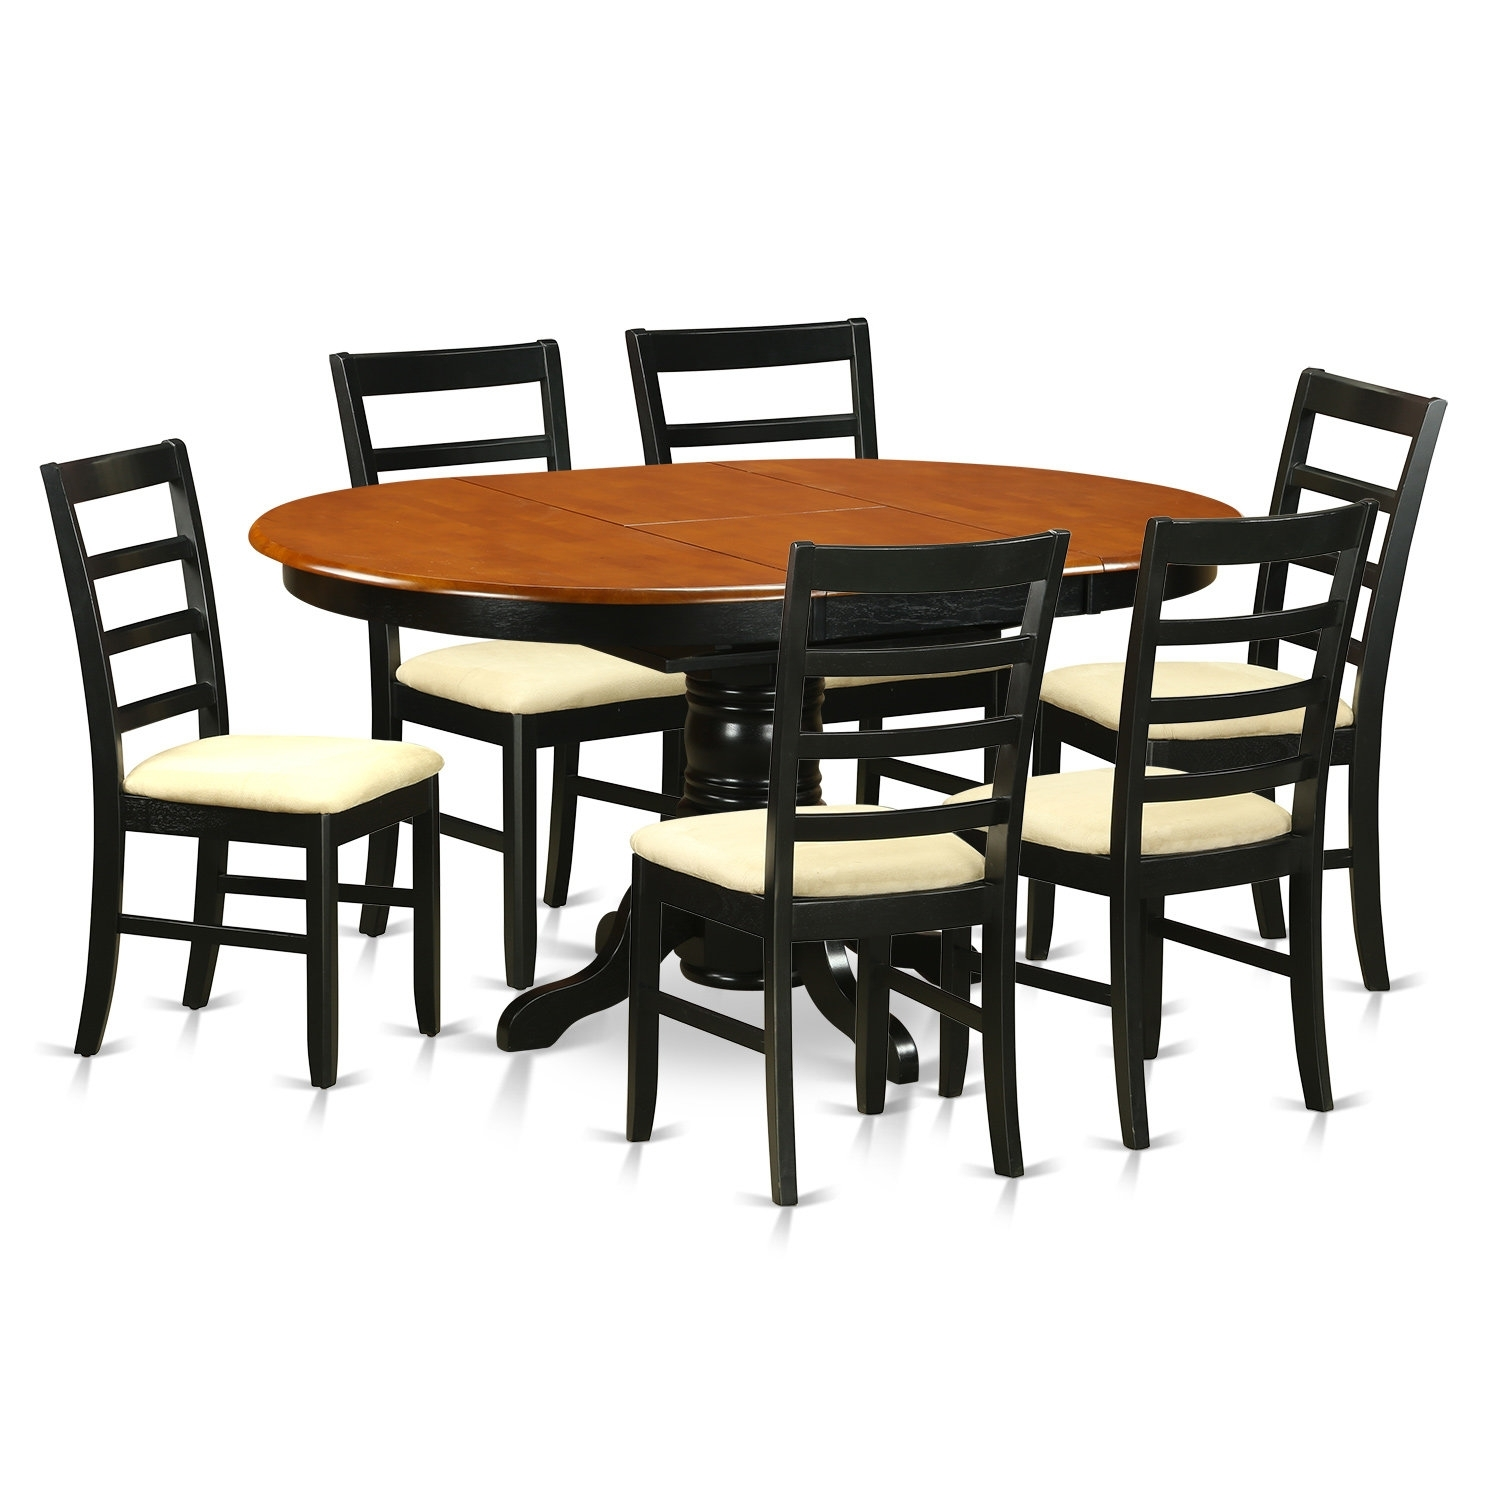 Darby Home Co Attamore 7 Piece Dining Set | Wayfair Inside Recent Chandler 7 Piece Extension Dining Sets With Fabric Side Chairs (View 17 of 20)